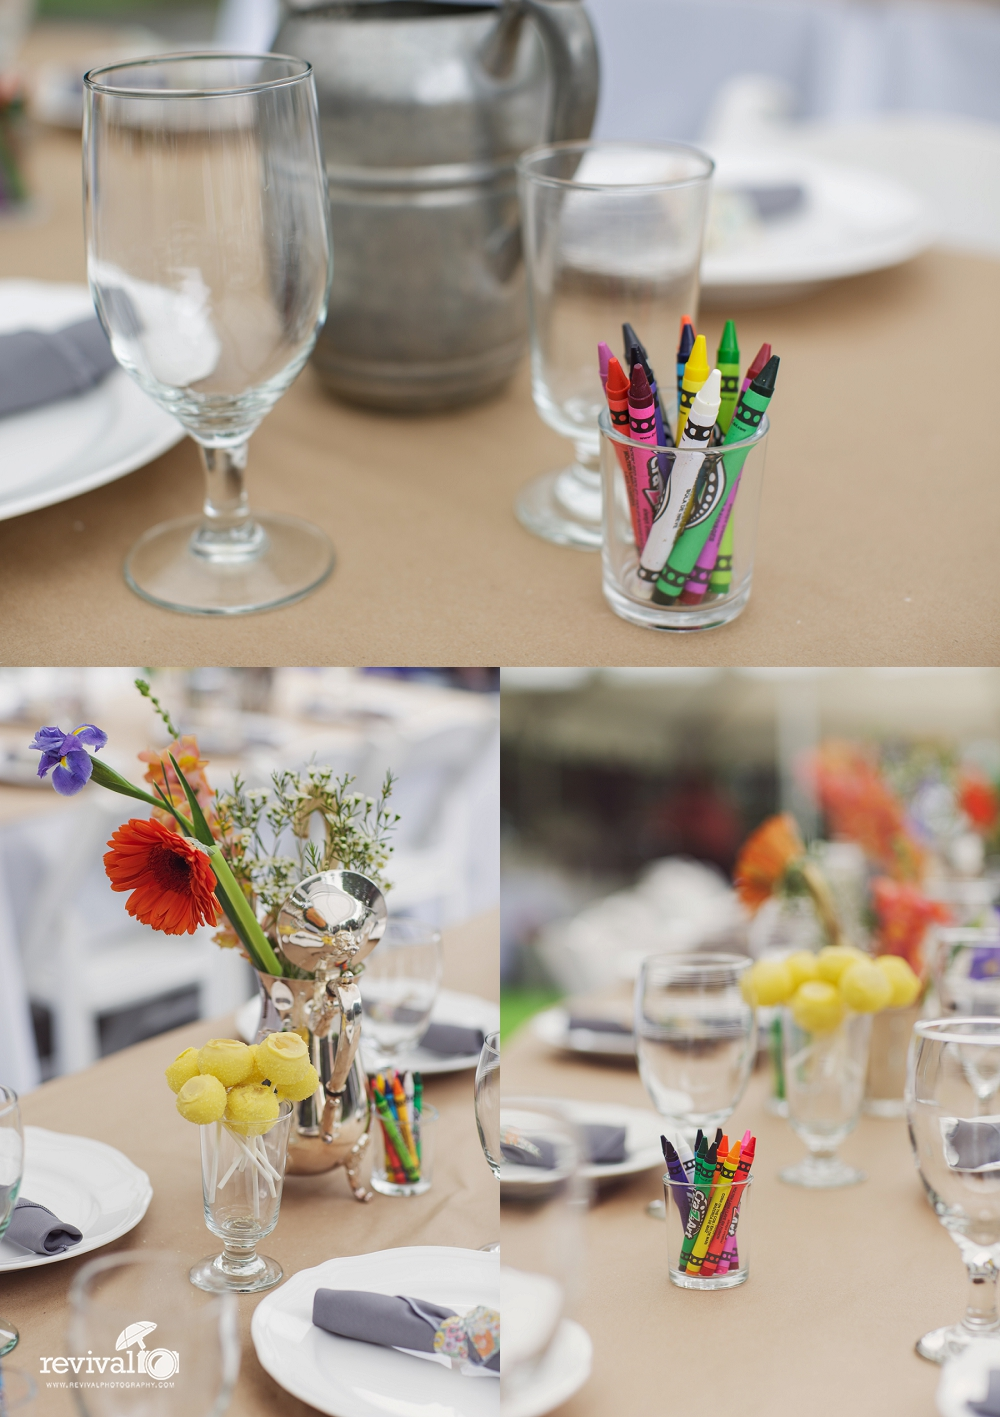 Such a fun tablescape with crayons and paper table runner so that guests can draw and color the table while they eat!